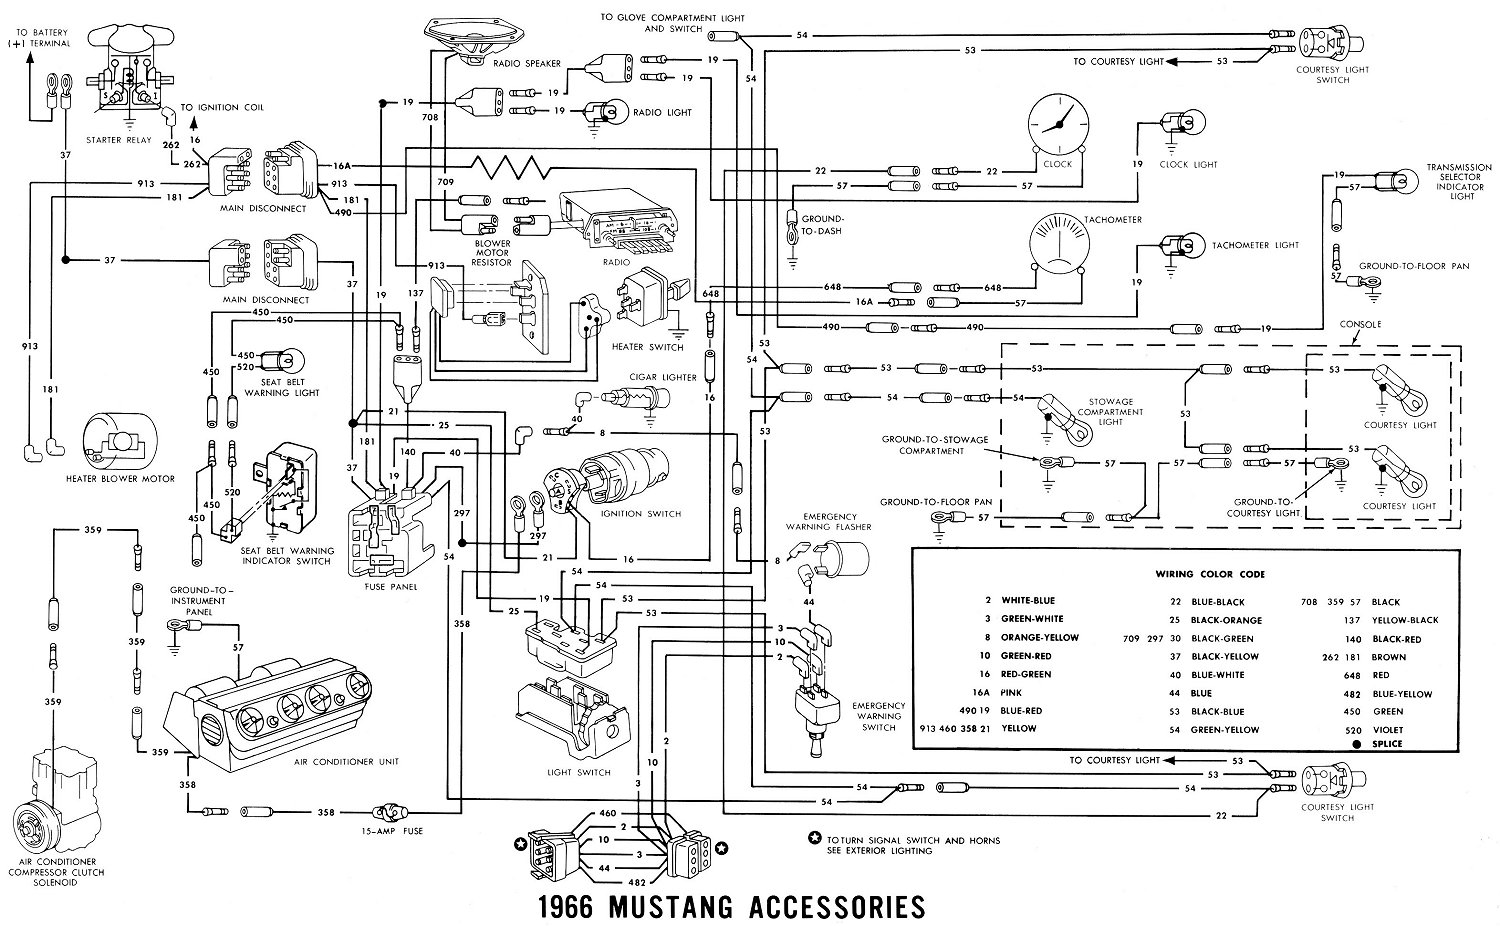 1966 mustang wiring diagrams average joe restoration  66 mustang wiring diagram schematic #2